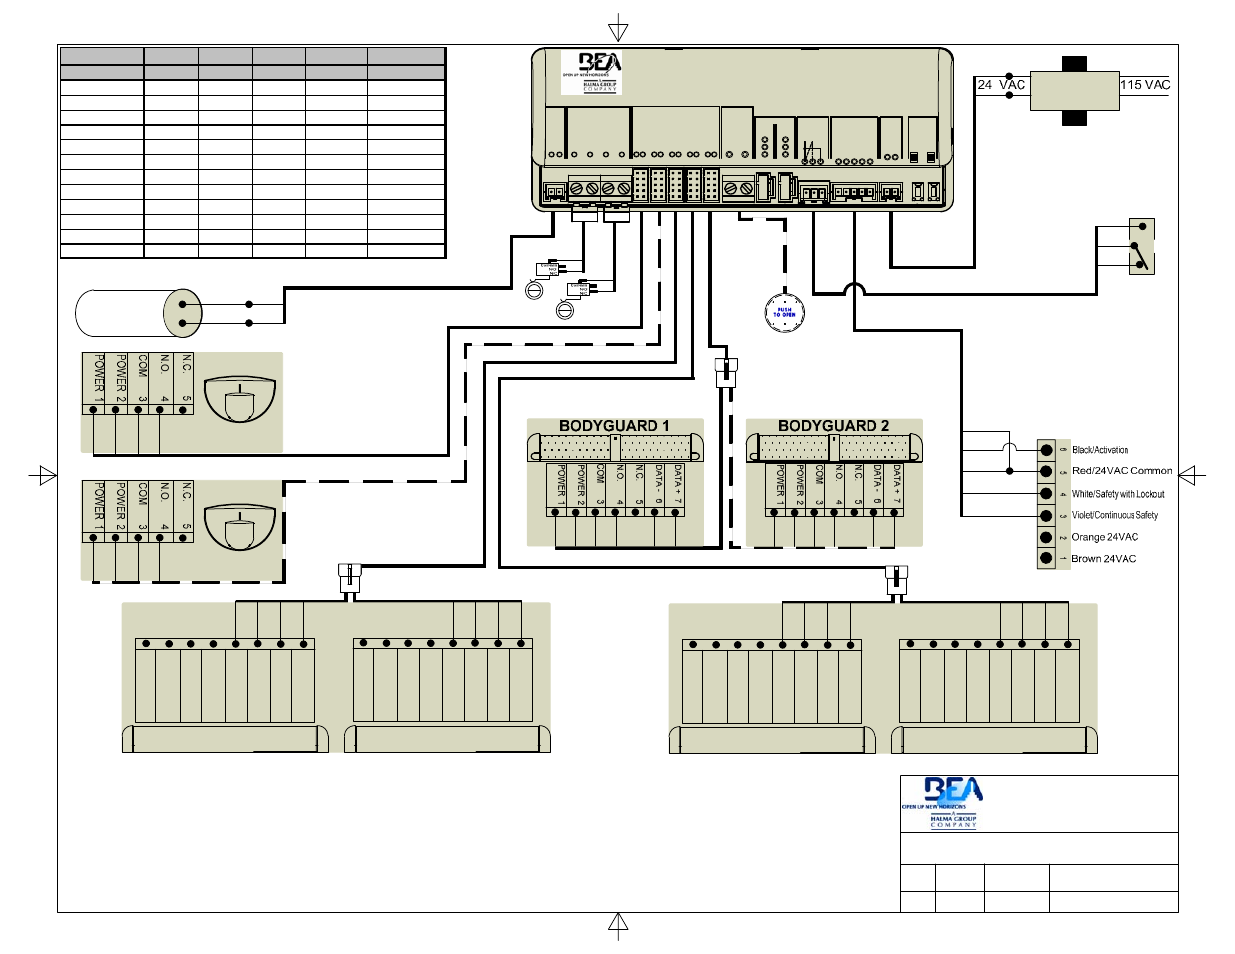 Lo Linx Eagle 1 2 Bea Gyrotech 1100 User Manual Page 14 Tormax Wiring Diagram